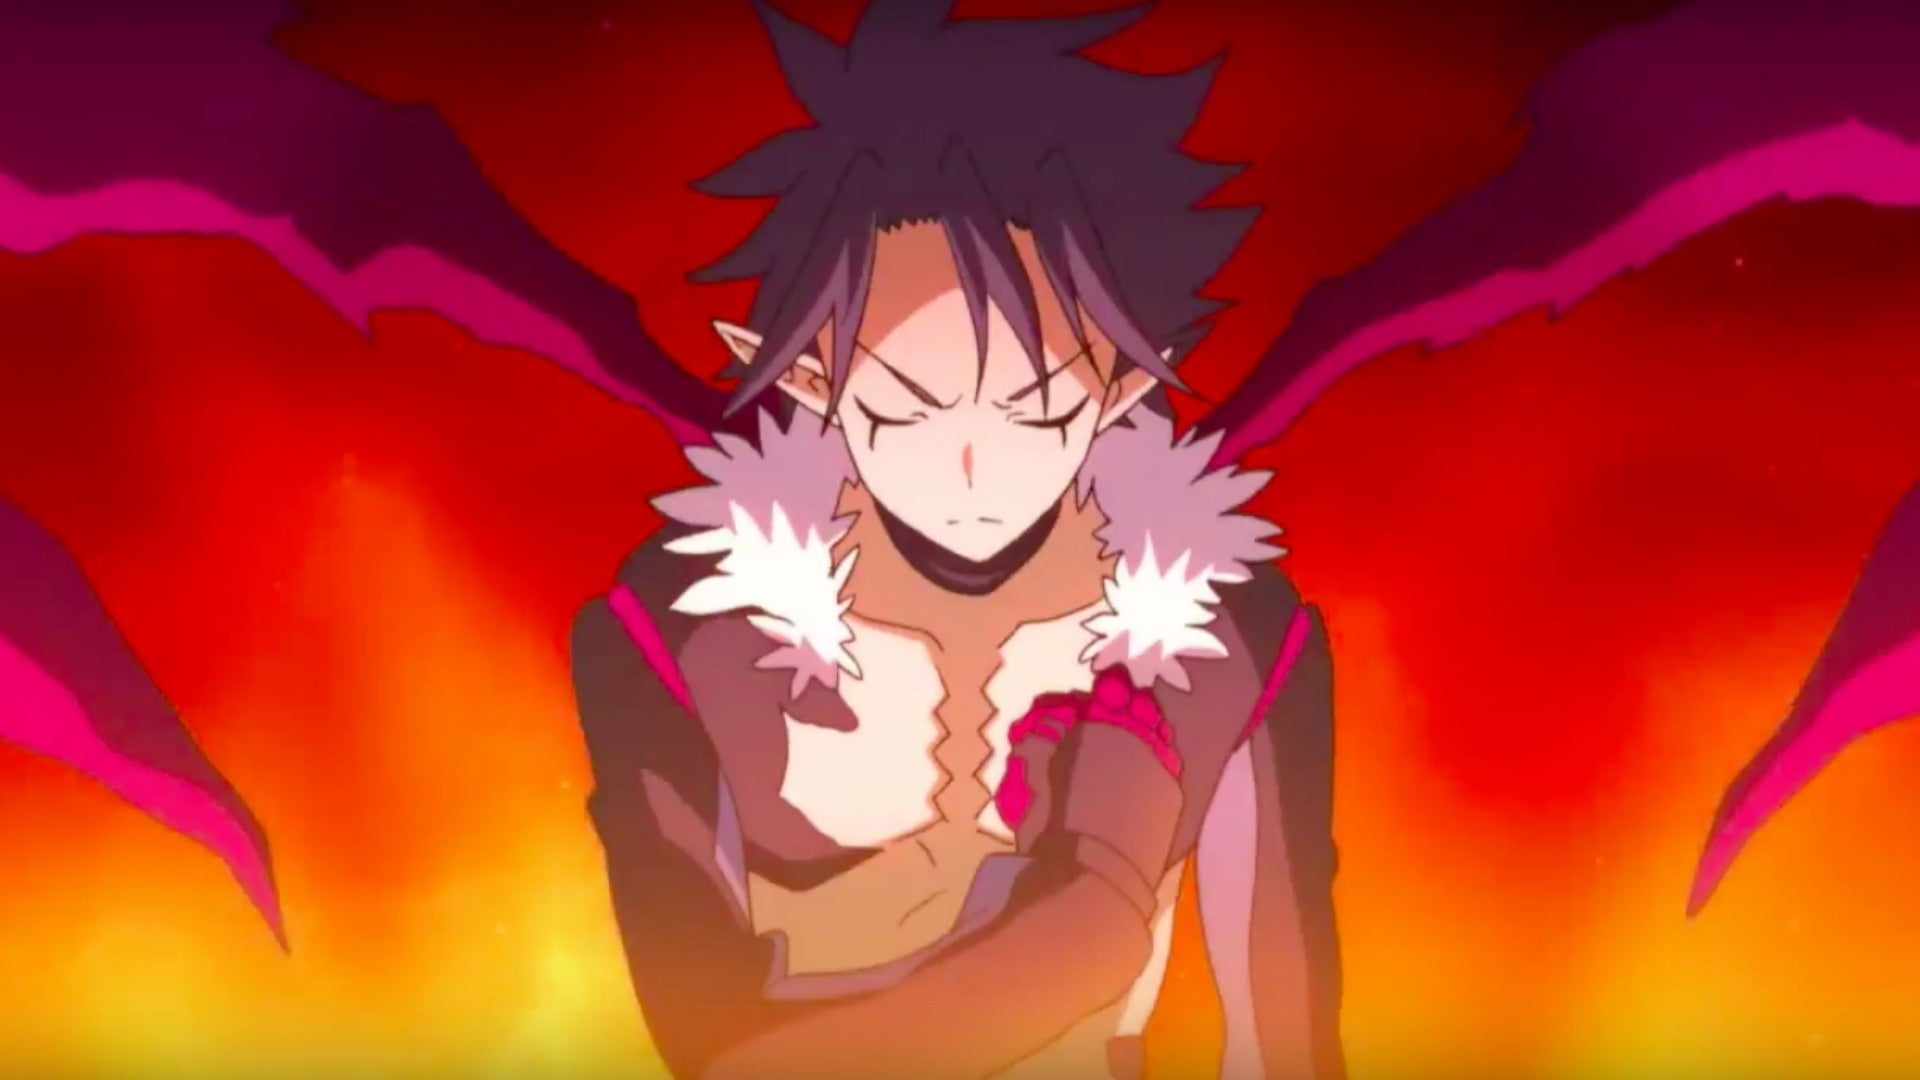 Disgaea 5 Videos Movies Amp Trailers PlayStation 4 IGN